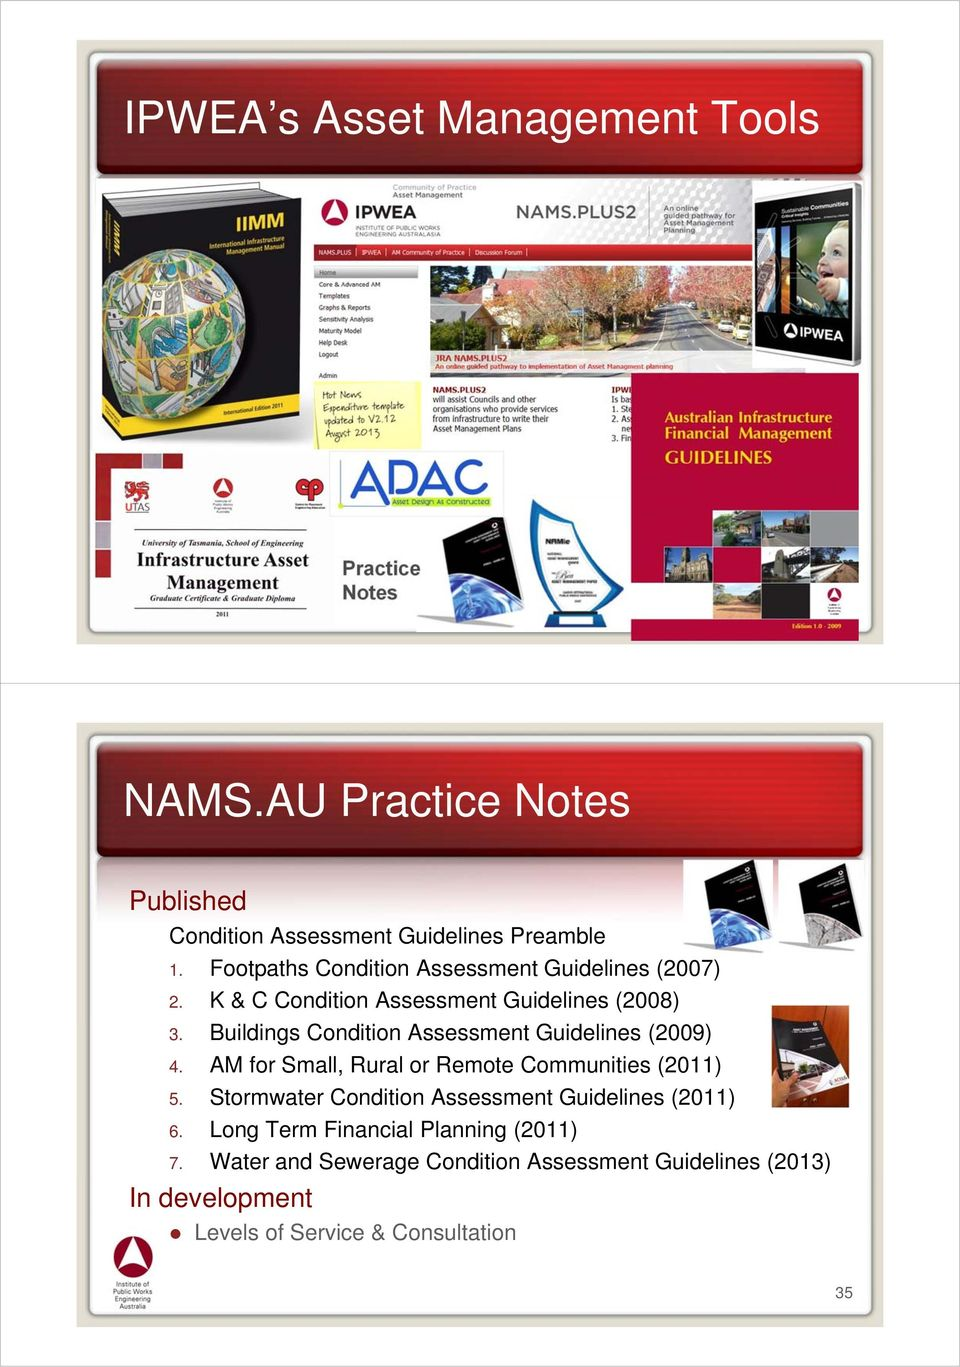 Buildings Condition Assessment Guidelines (2009) 4. AM for Small, Rural or Remote Communities (2011) 5.